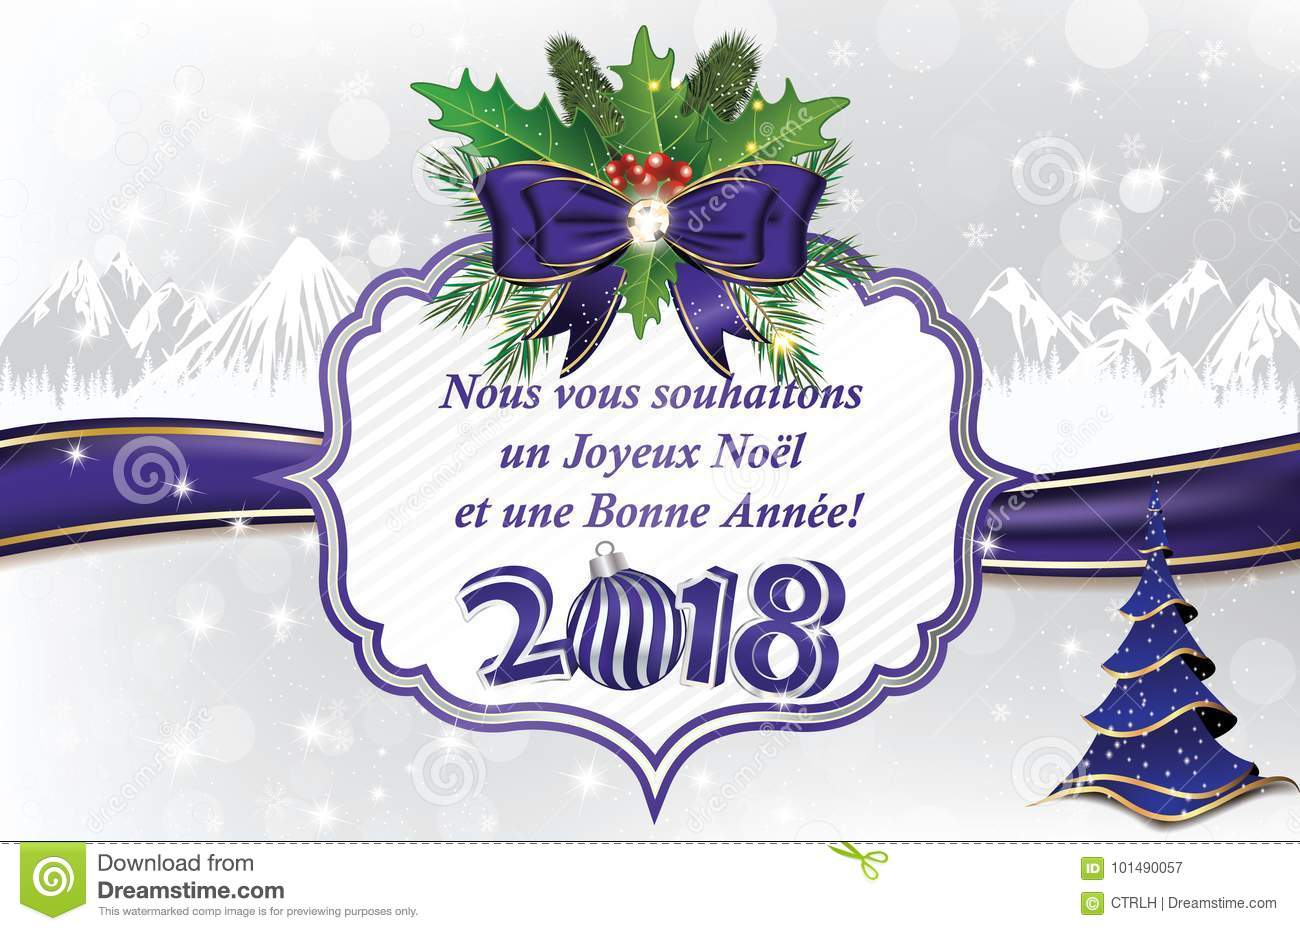 Seasons Greetings 2018 In French Stock Image Image Of Annee